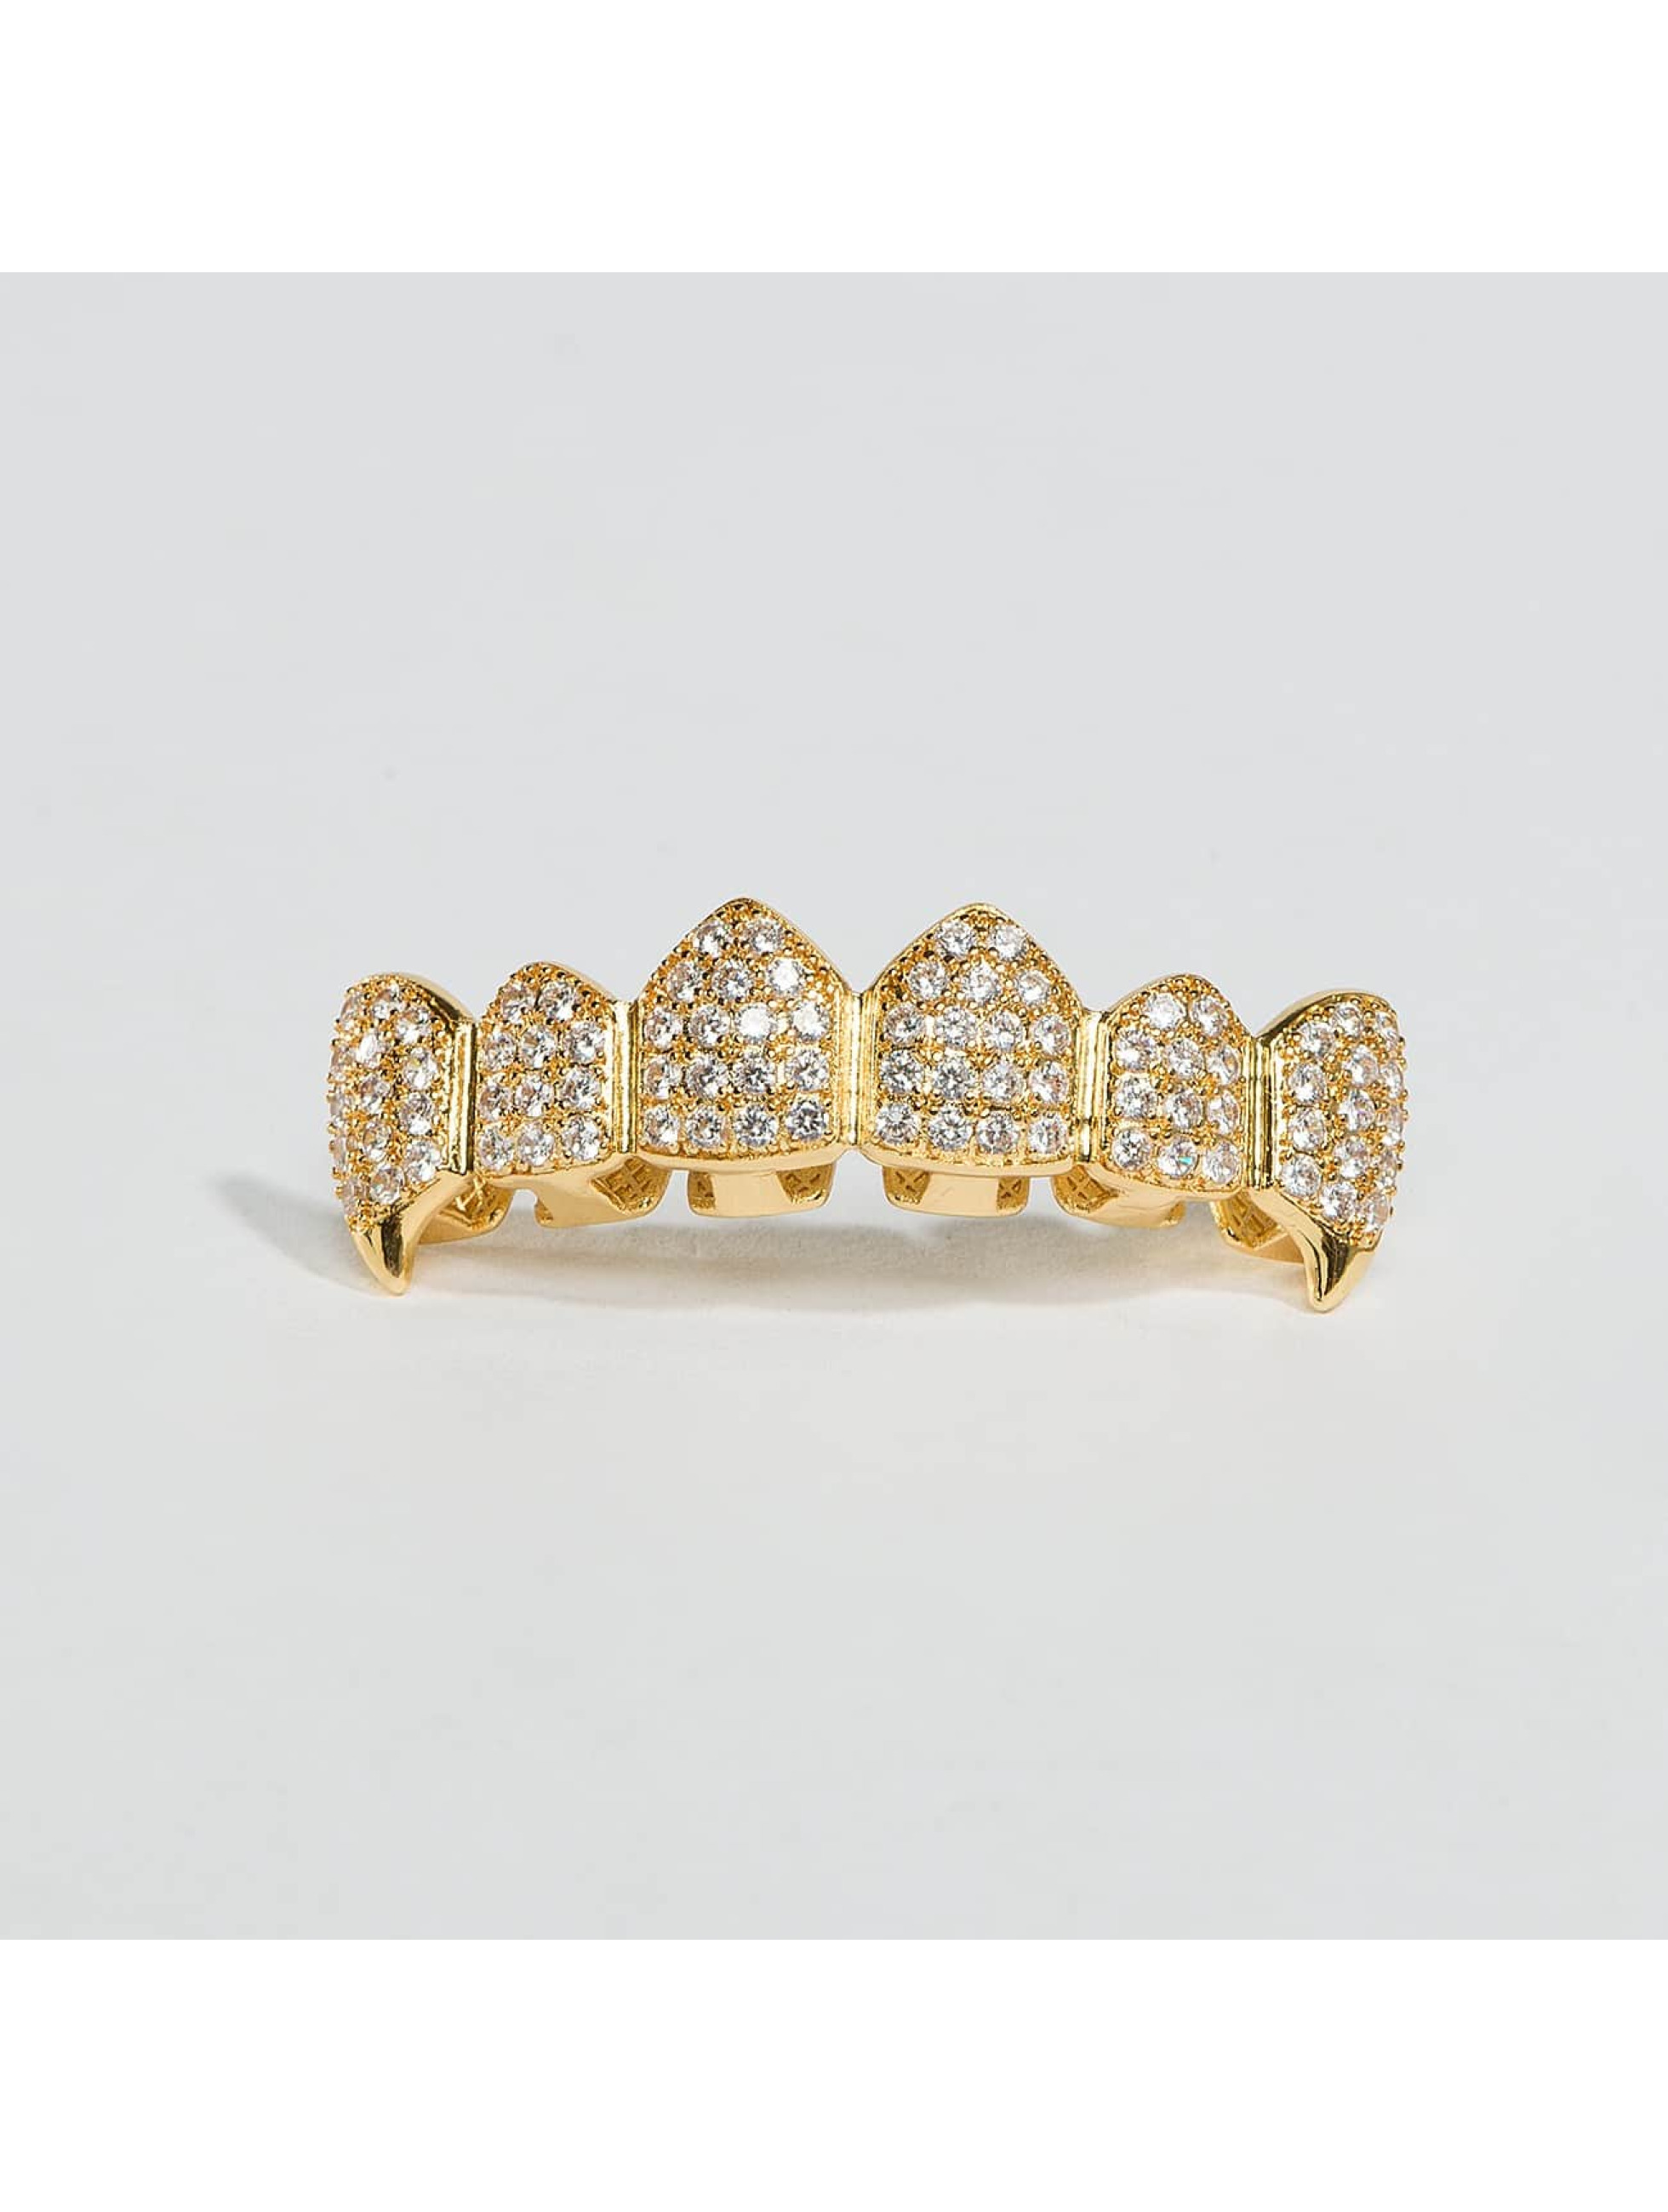 KING ICE Overige Gold_Plated CZ Dracula Teeth Top goud